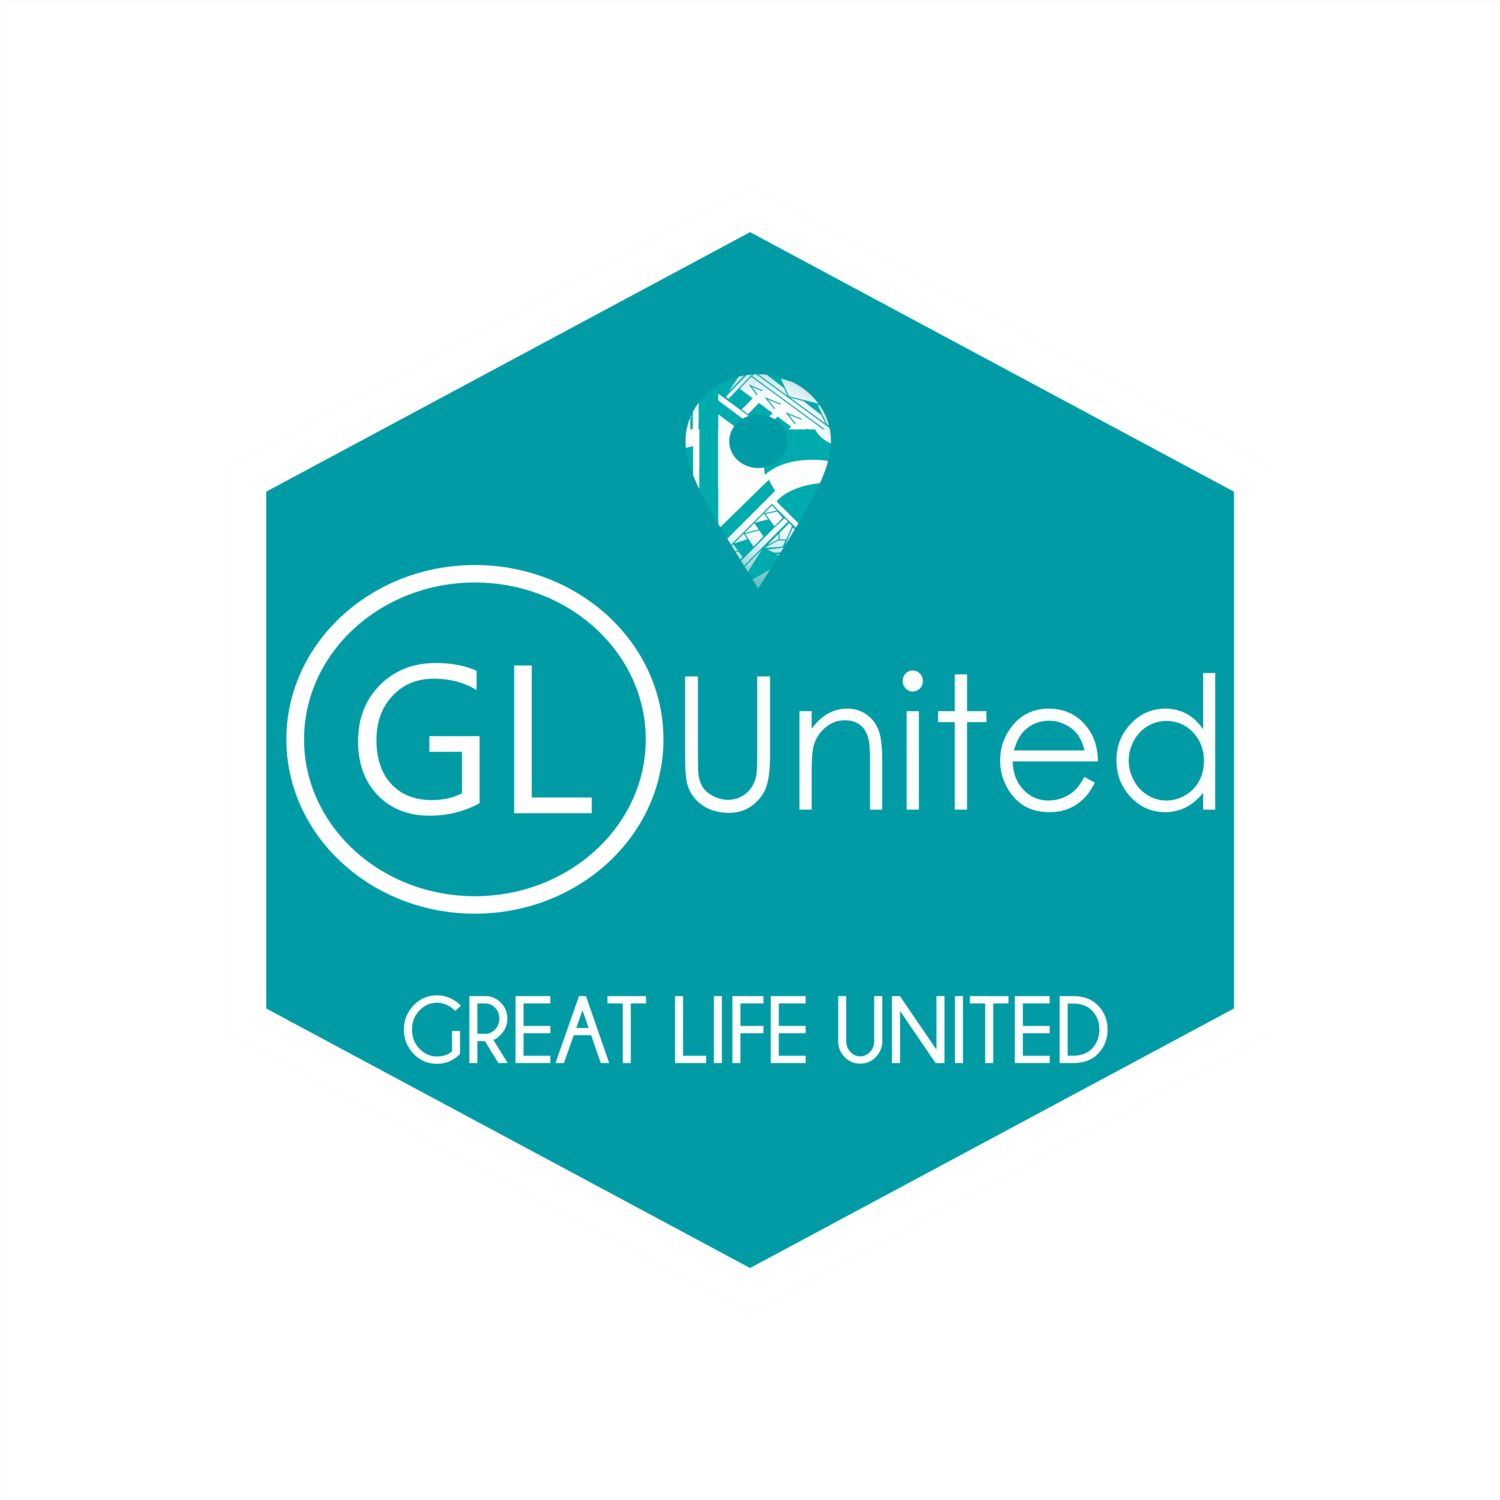 Great Life United